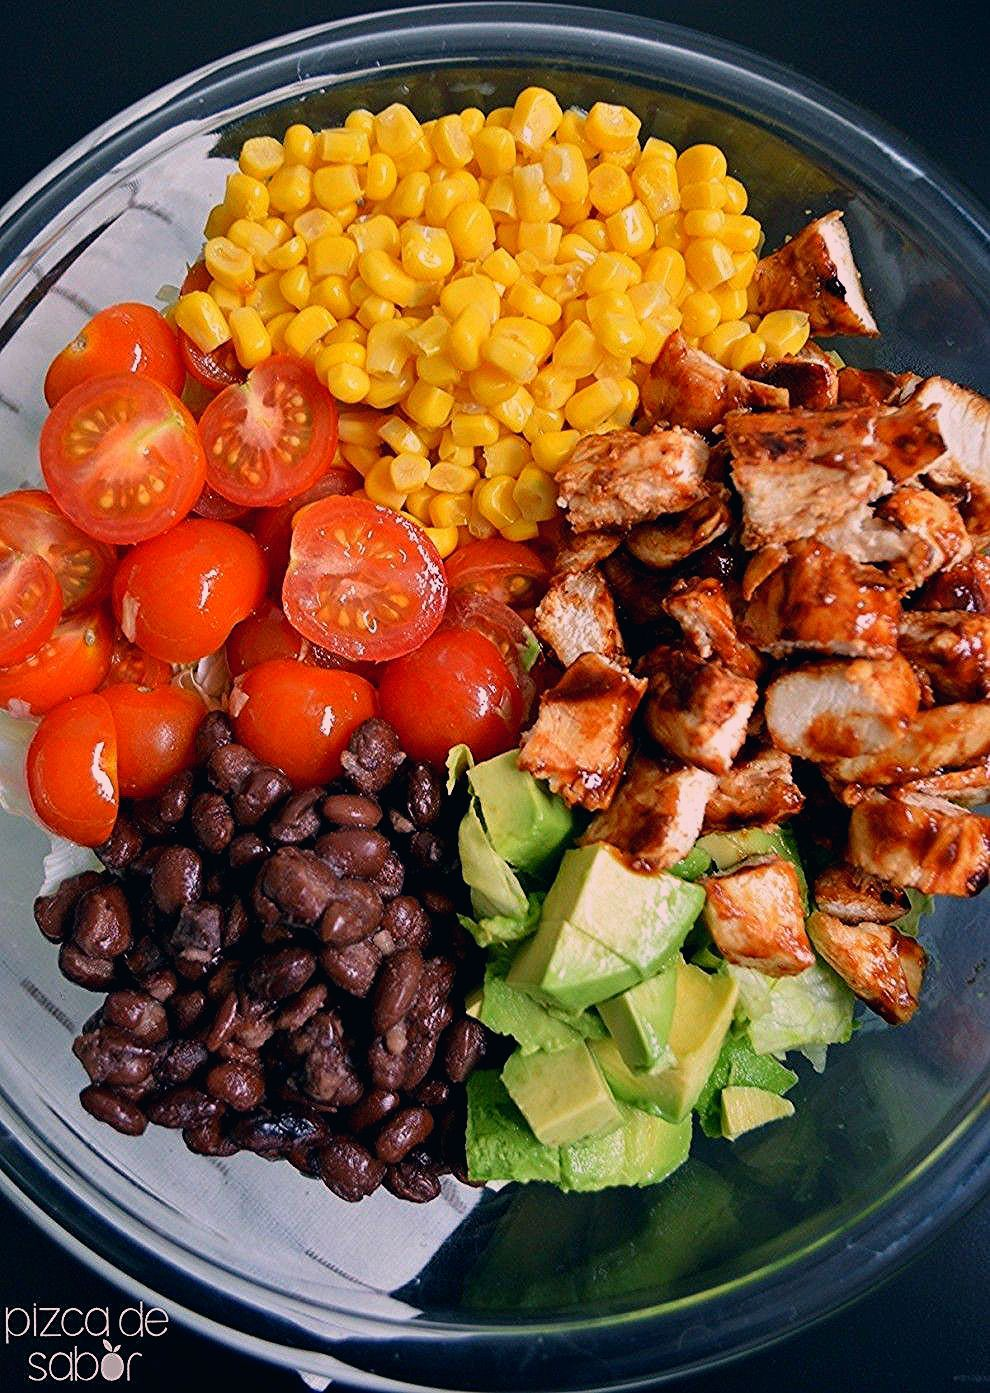 Pin By Rina Ferris On Eats And Drinks Fowl Healthy Dinner Recipes Food Healthy Recipies